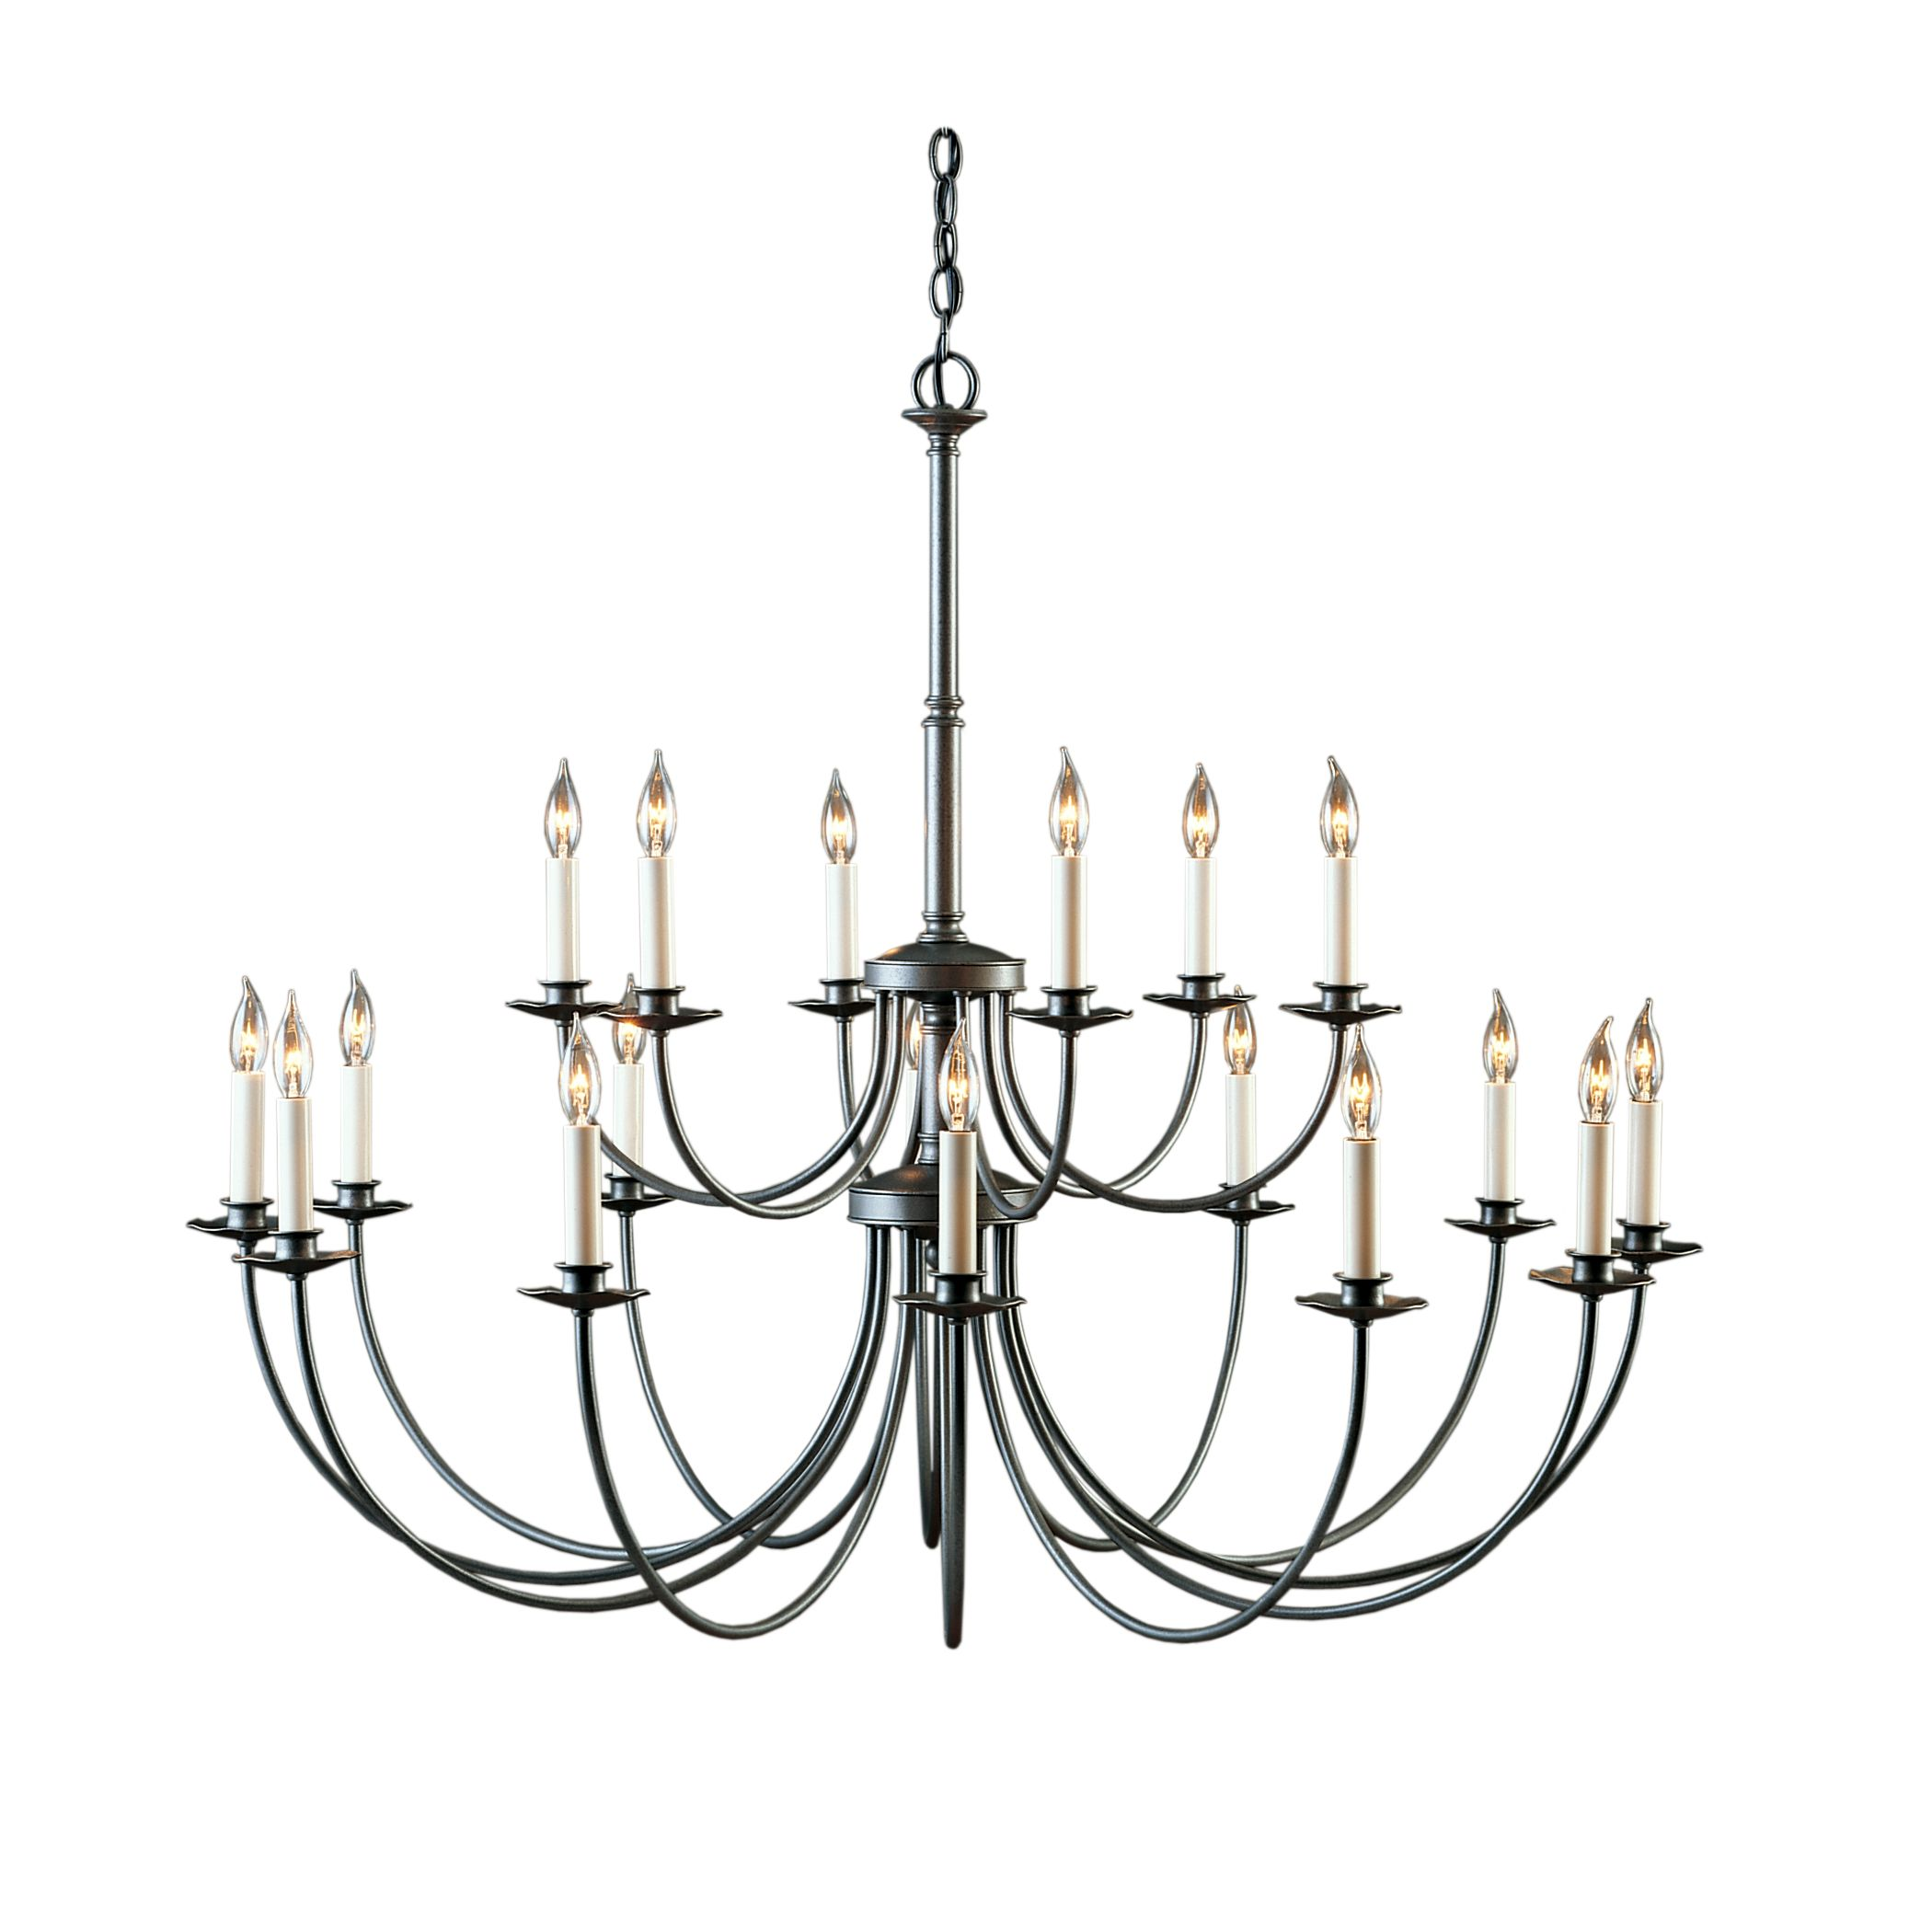 2100x2100 Simple Lines 18 Arm Chandelier Hubbardton Forge